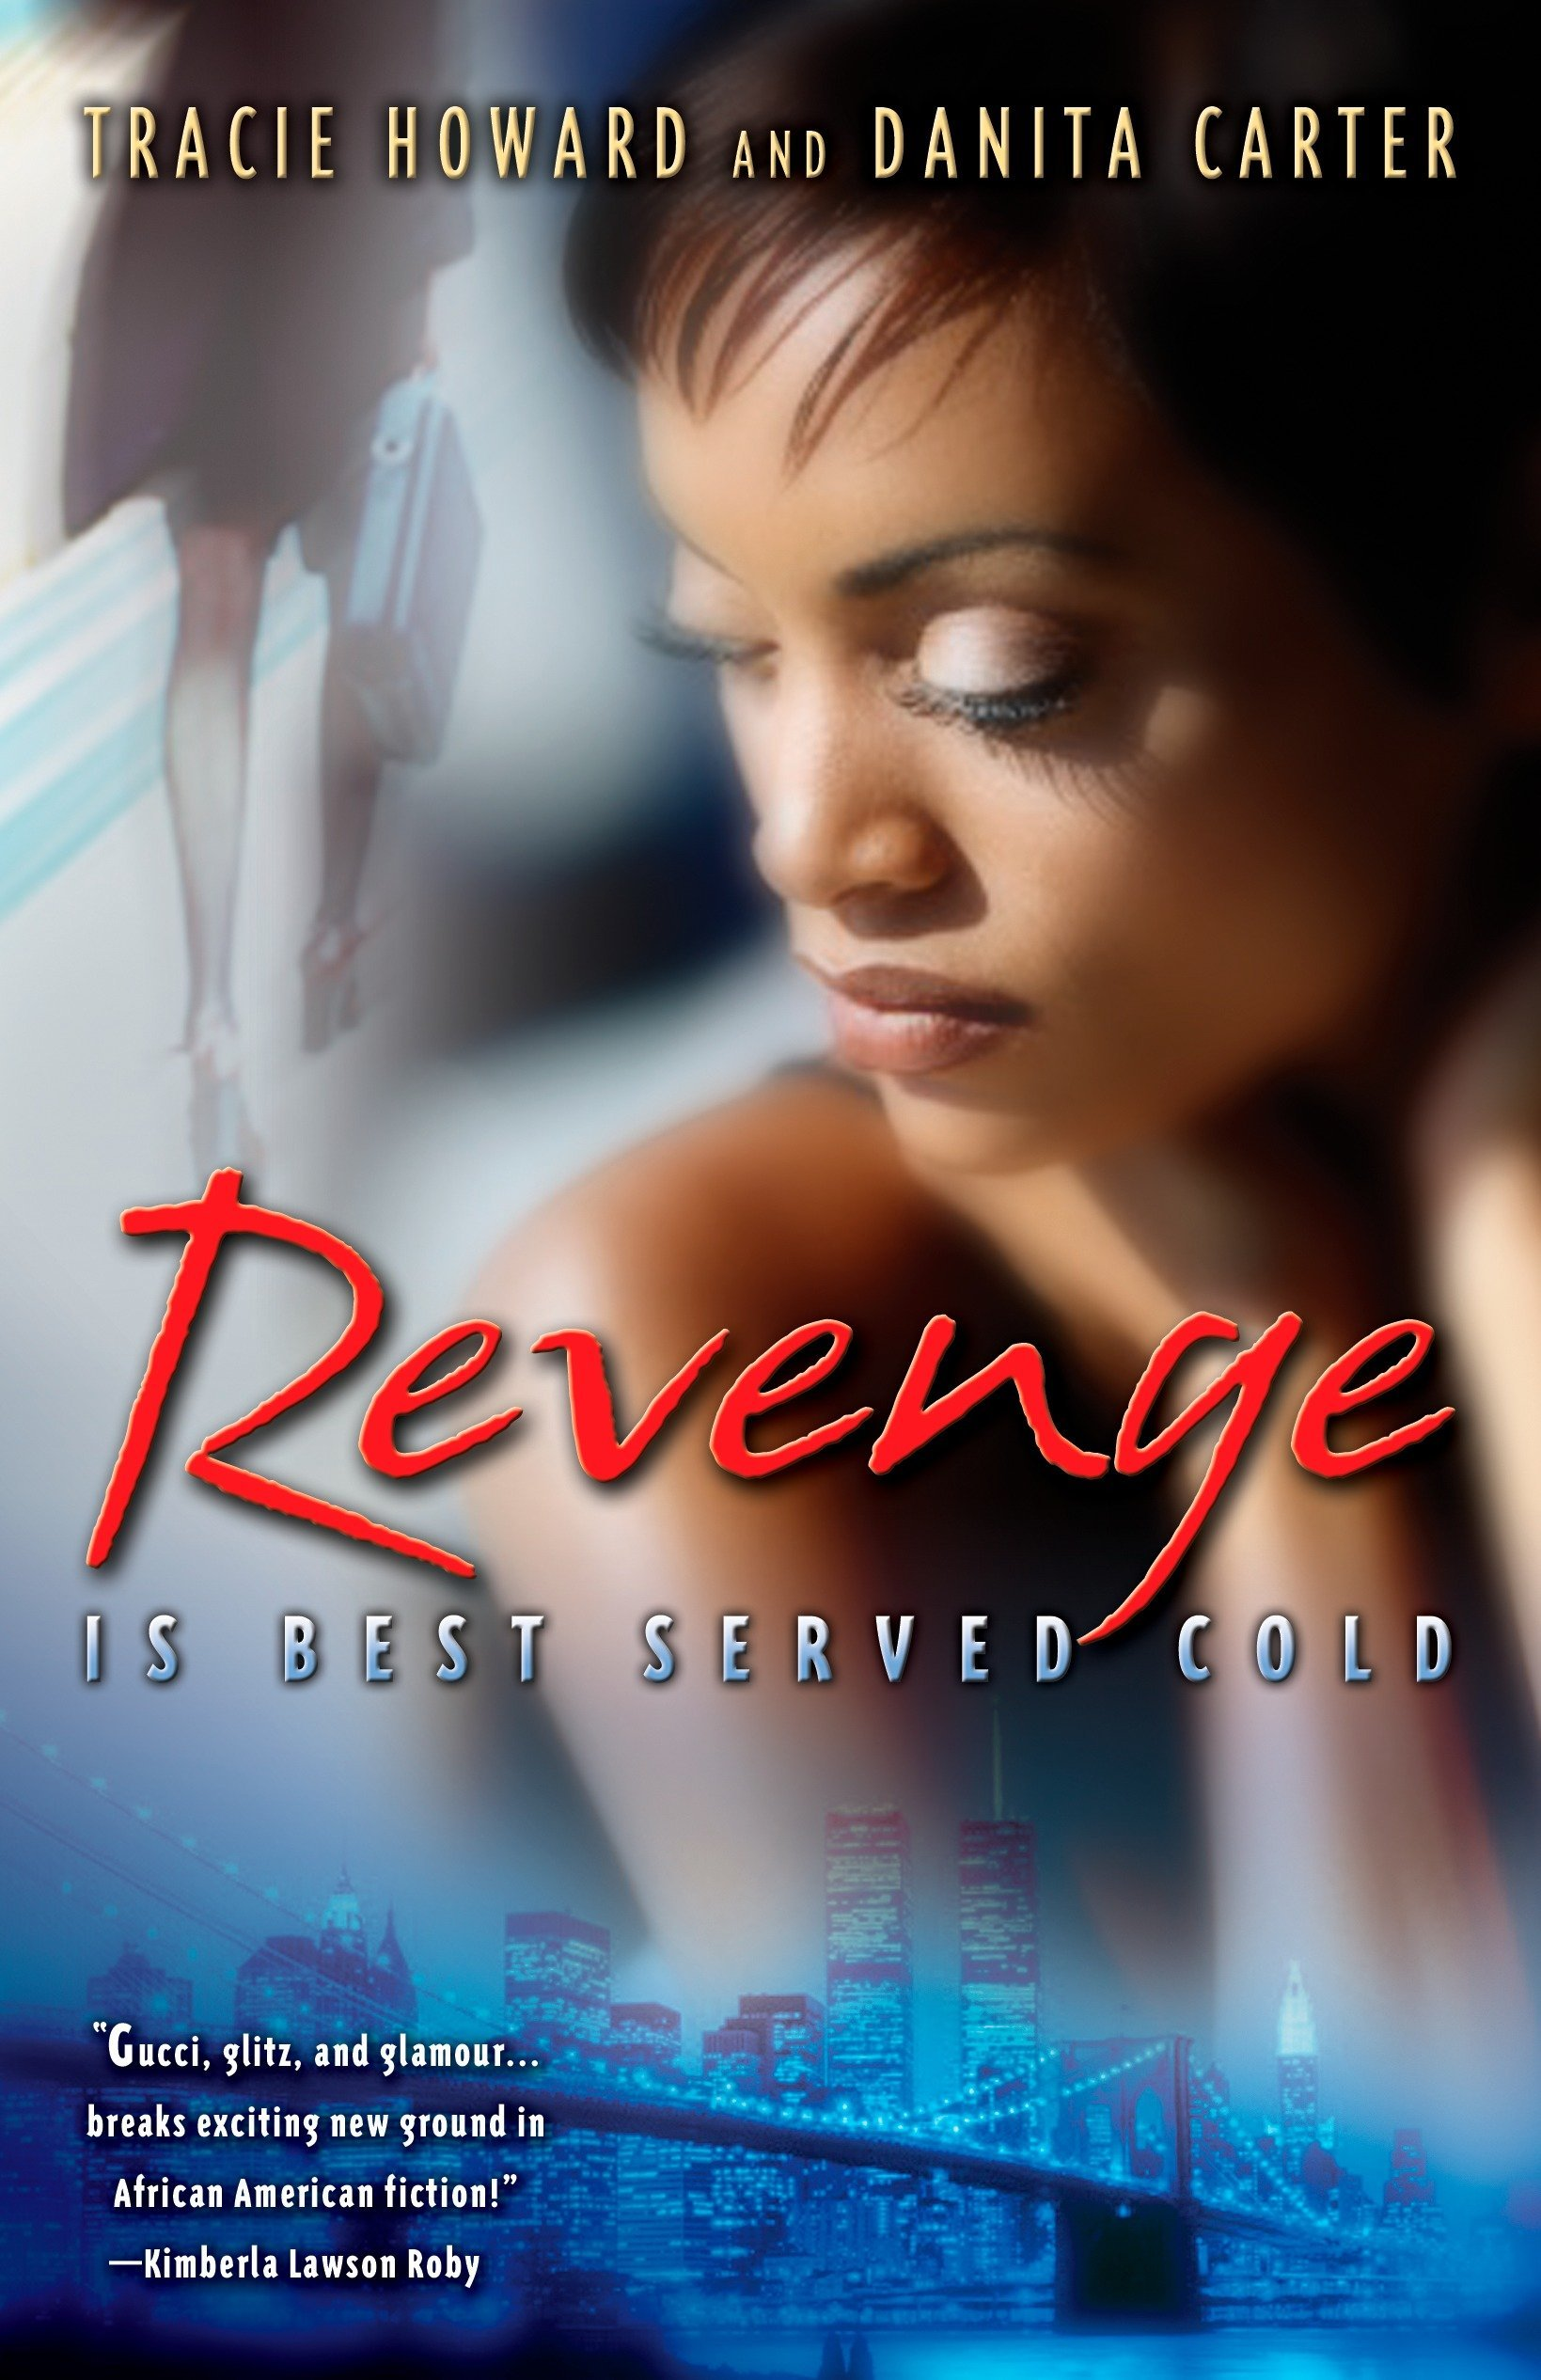 1292552ea Amazon.com: Revenge is Best Served Cold (9780451204752): Tracie ...